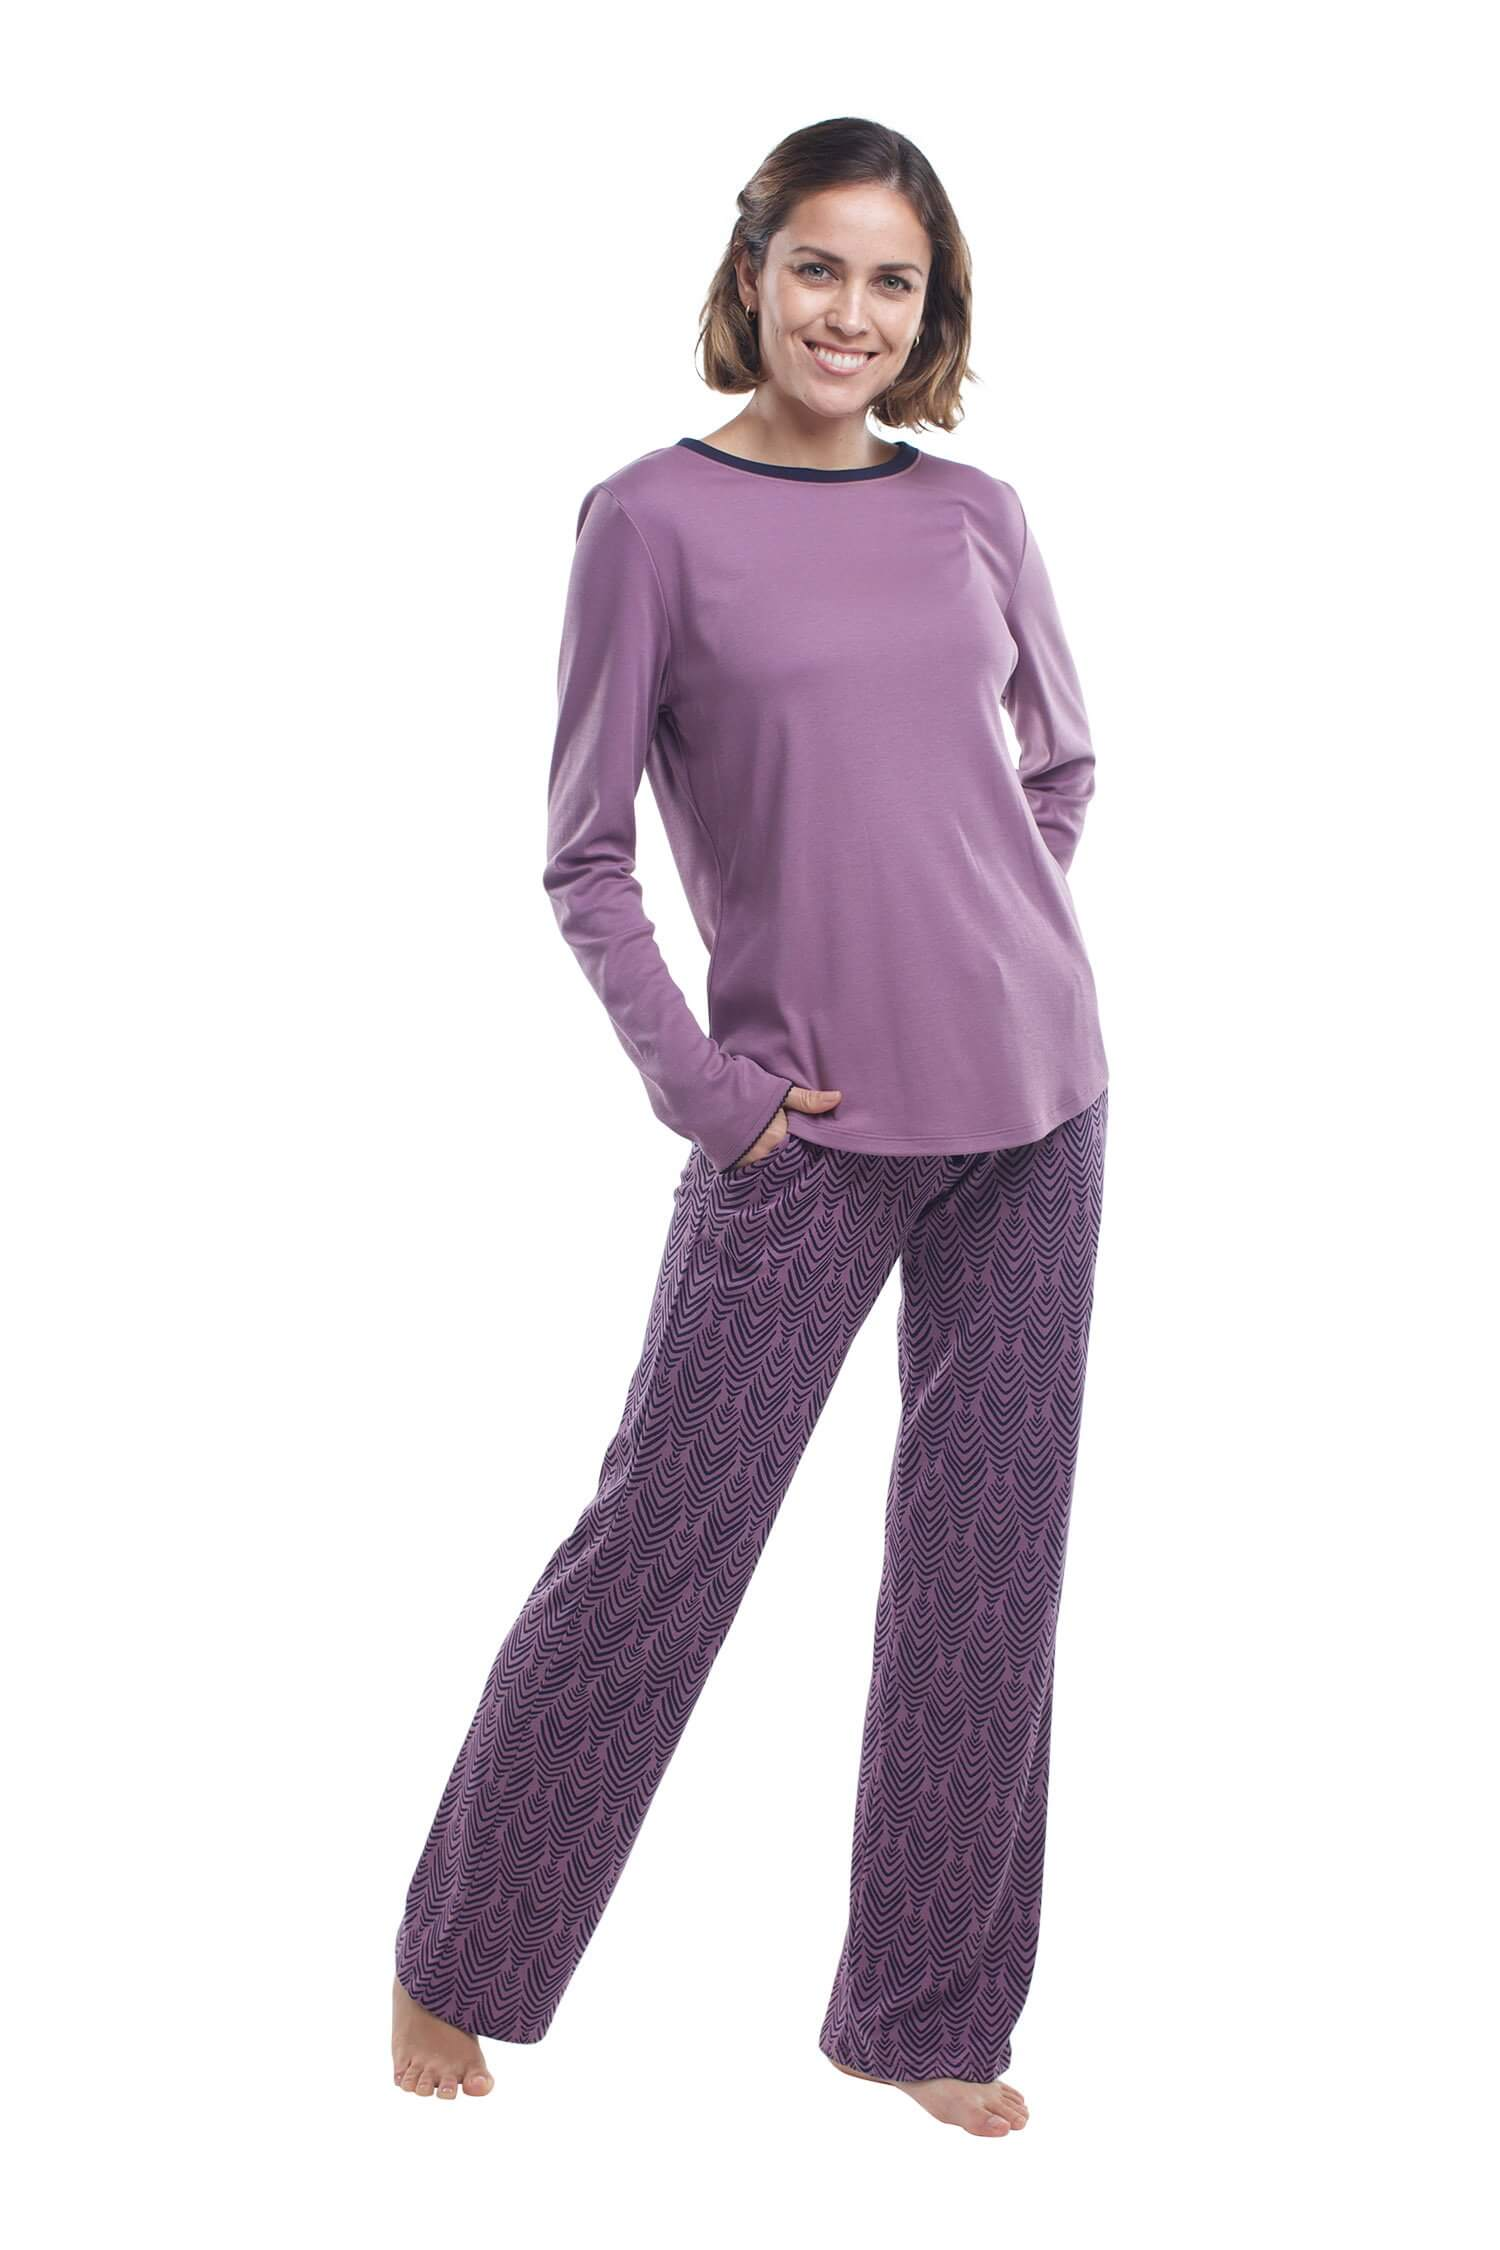 The Long-Sleeve Set in Plum